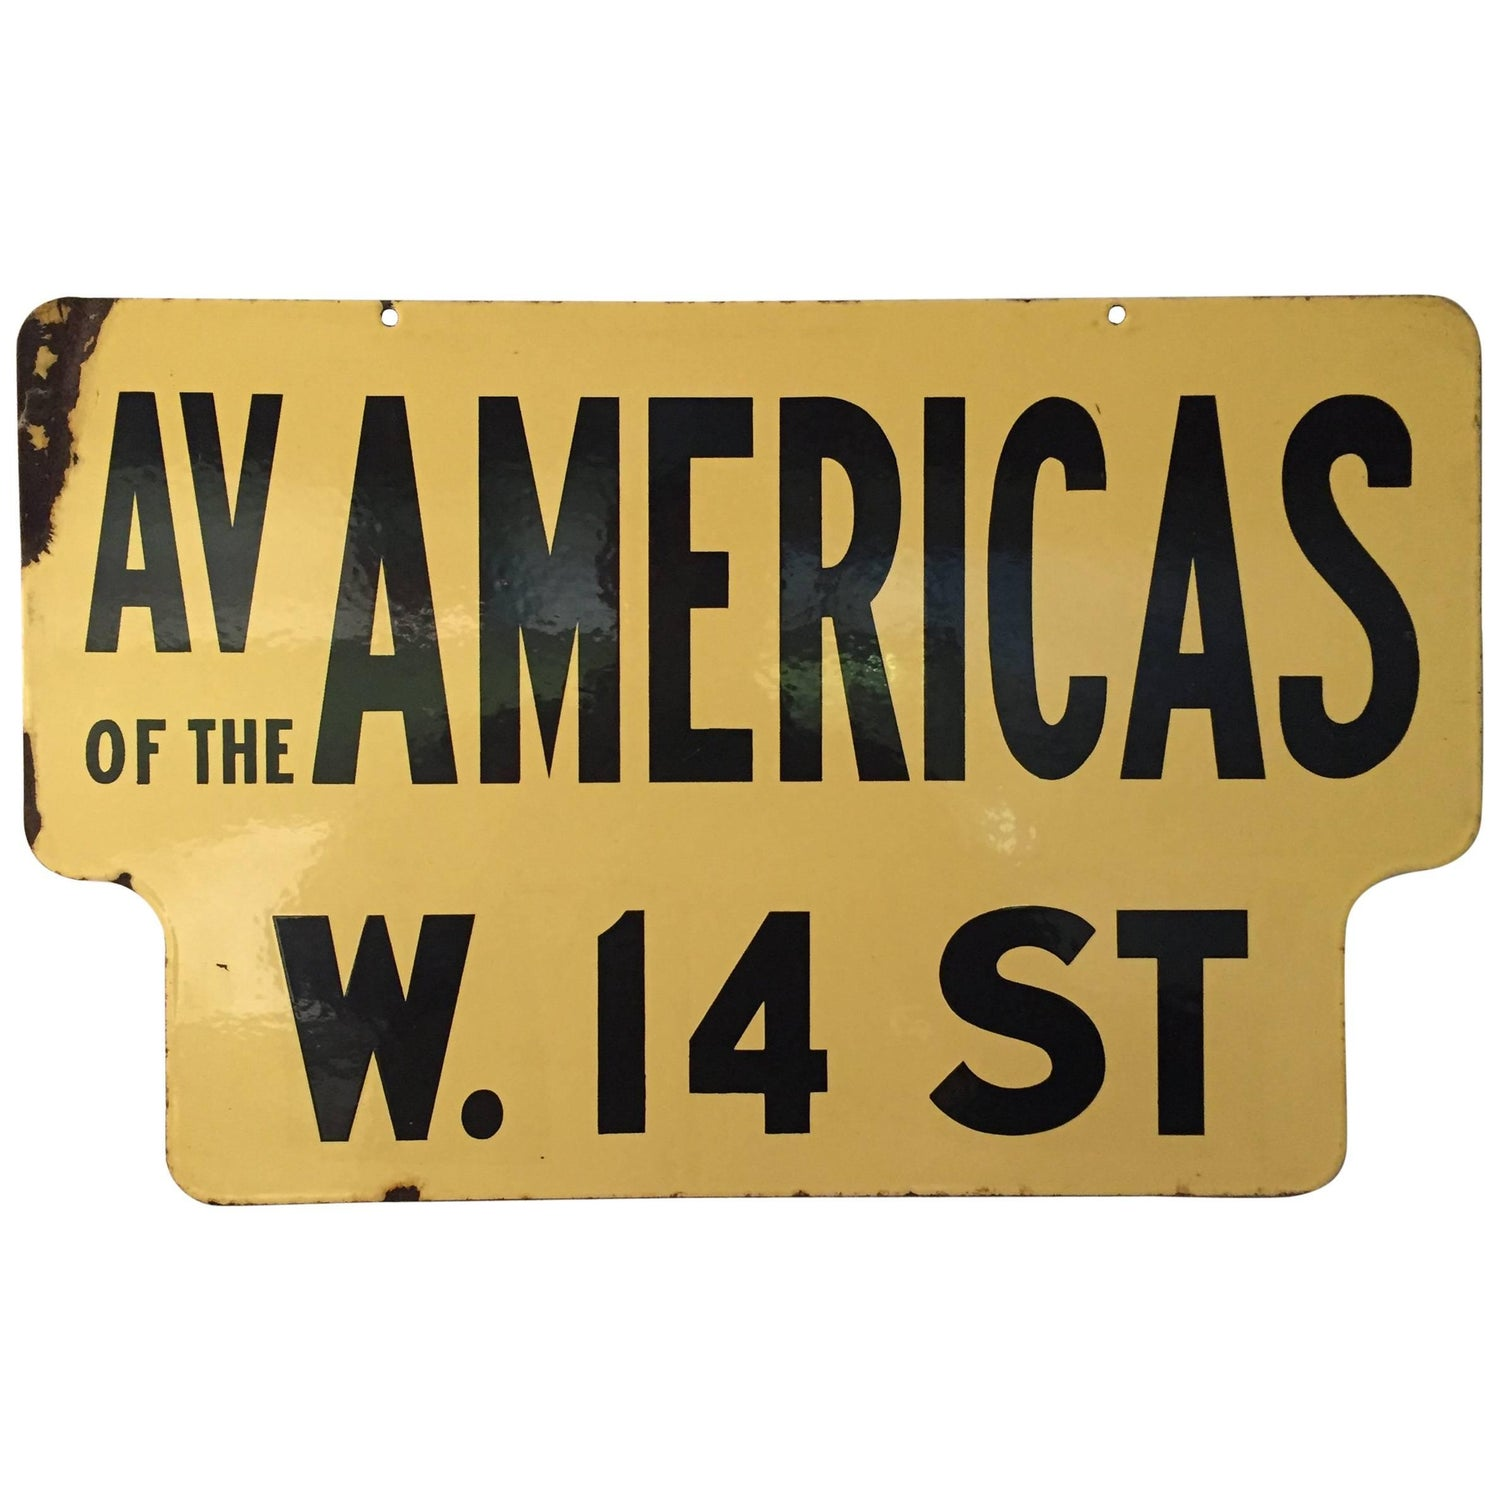 1950s Signs - 134 For Sale at 1stdibs